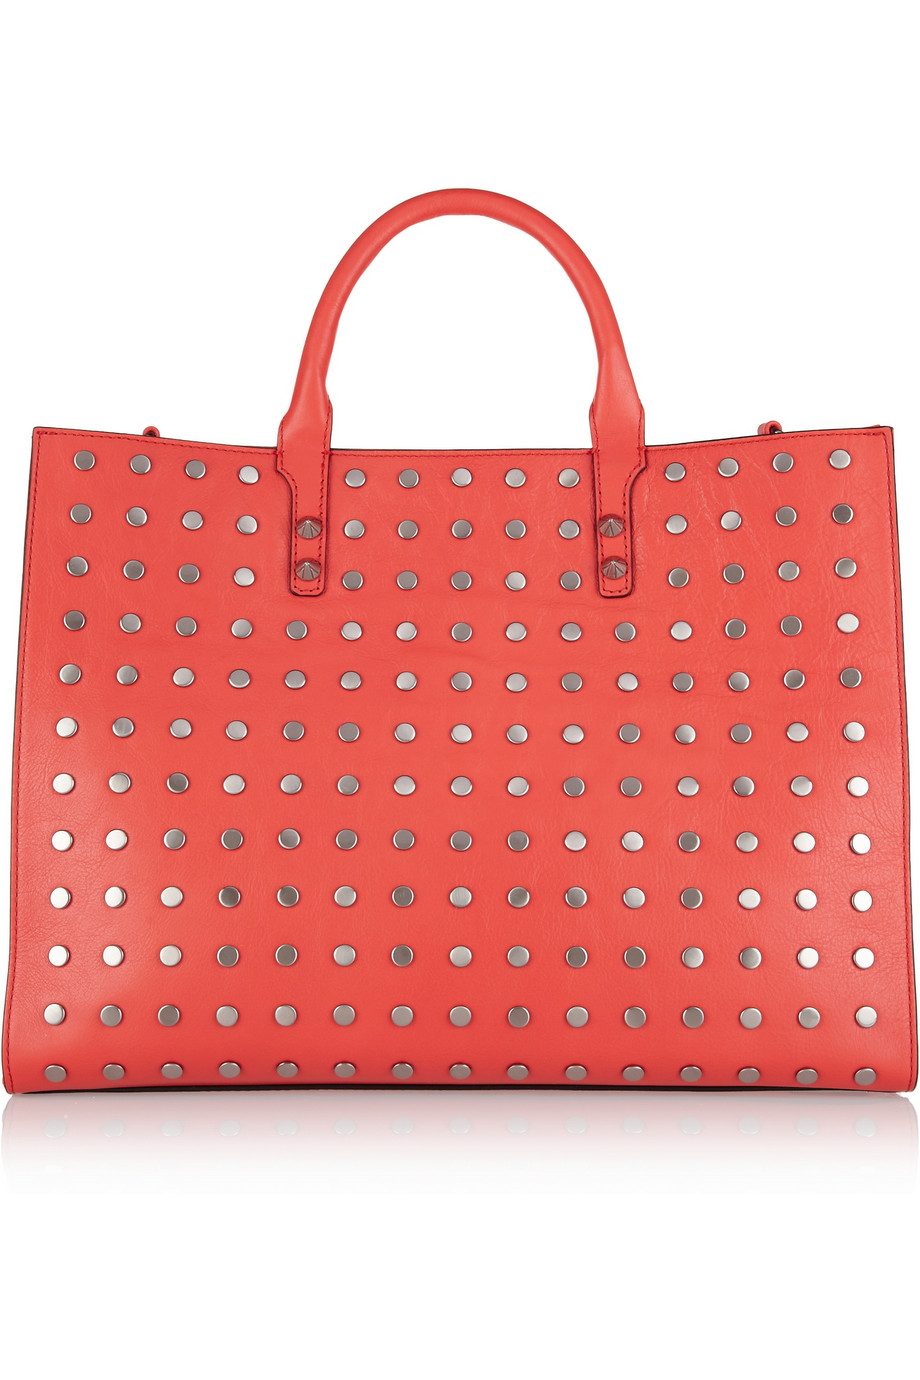 Grayson studded leather tote | Rebecca Minkoff | THE OUTNET